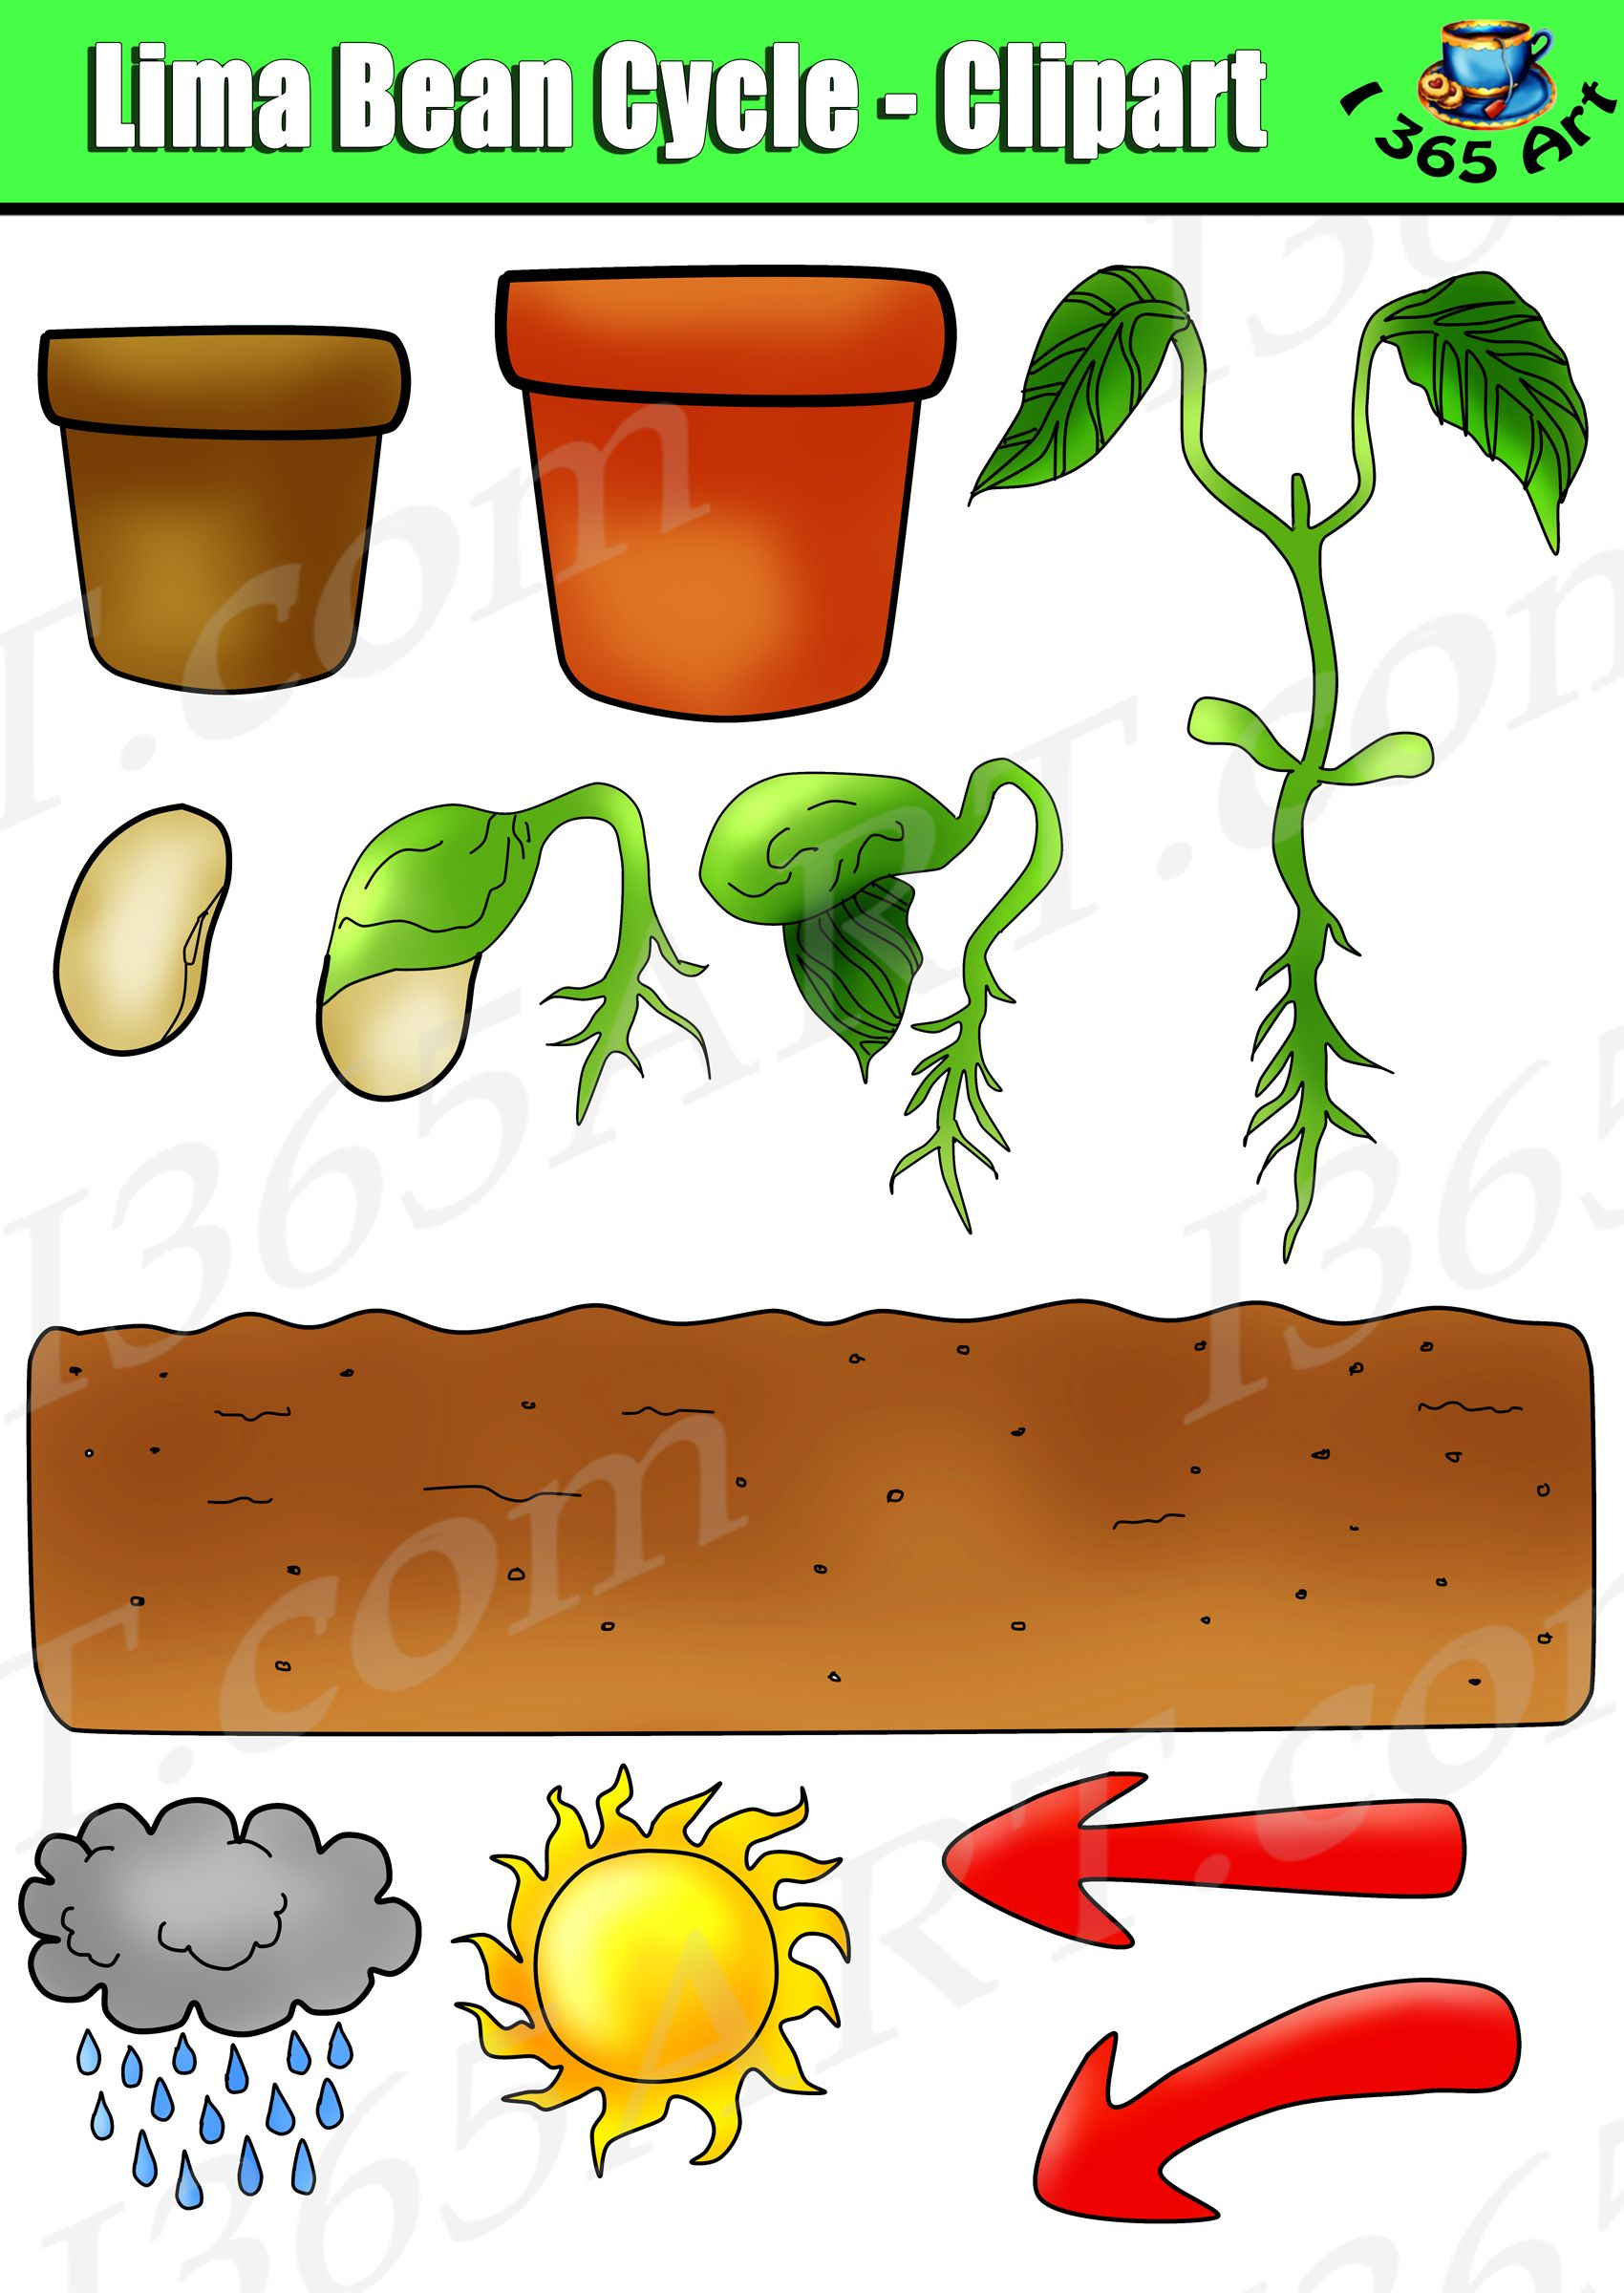 Bean clipart silly. Plant life cycle lima